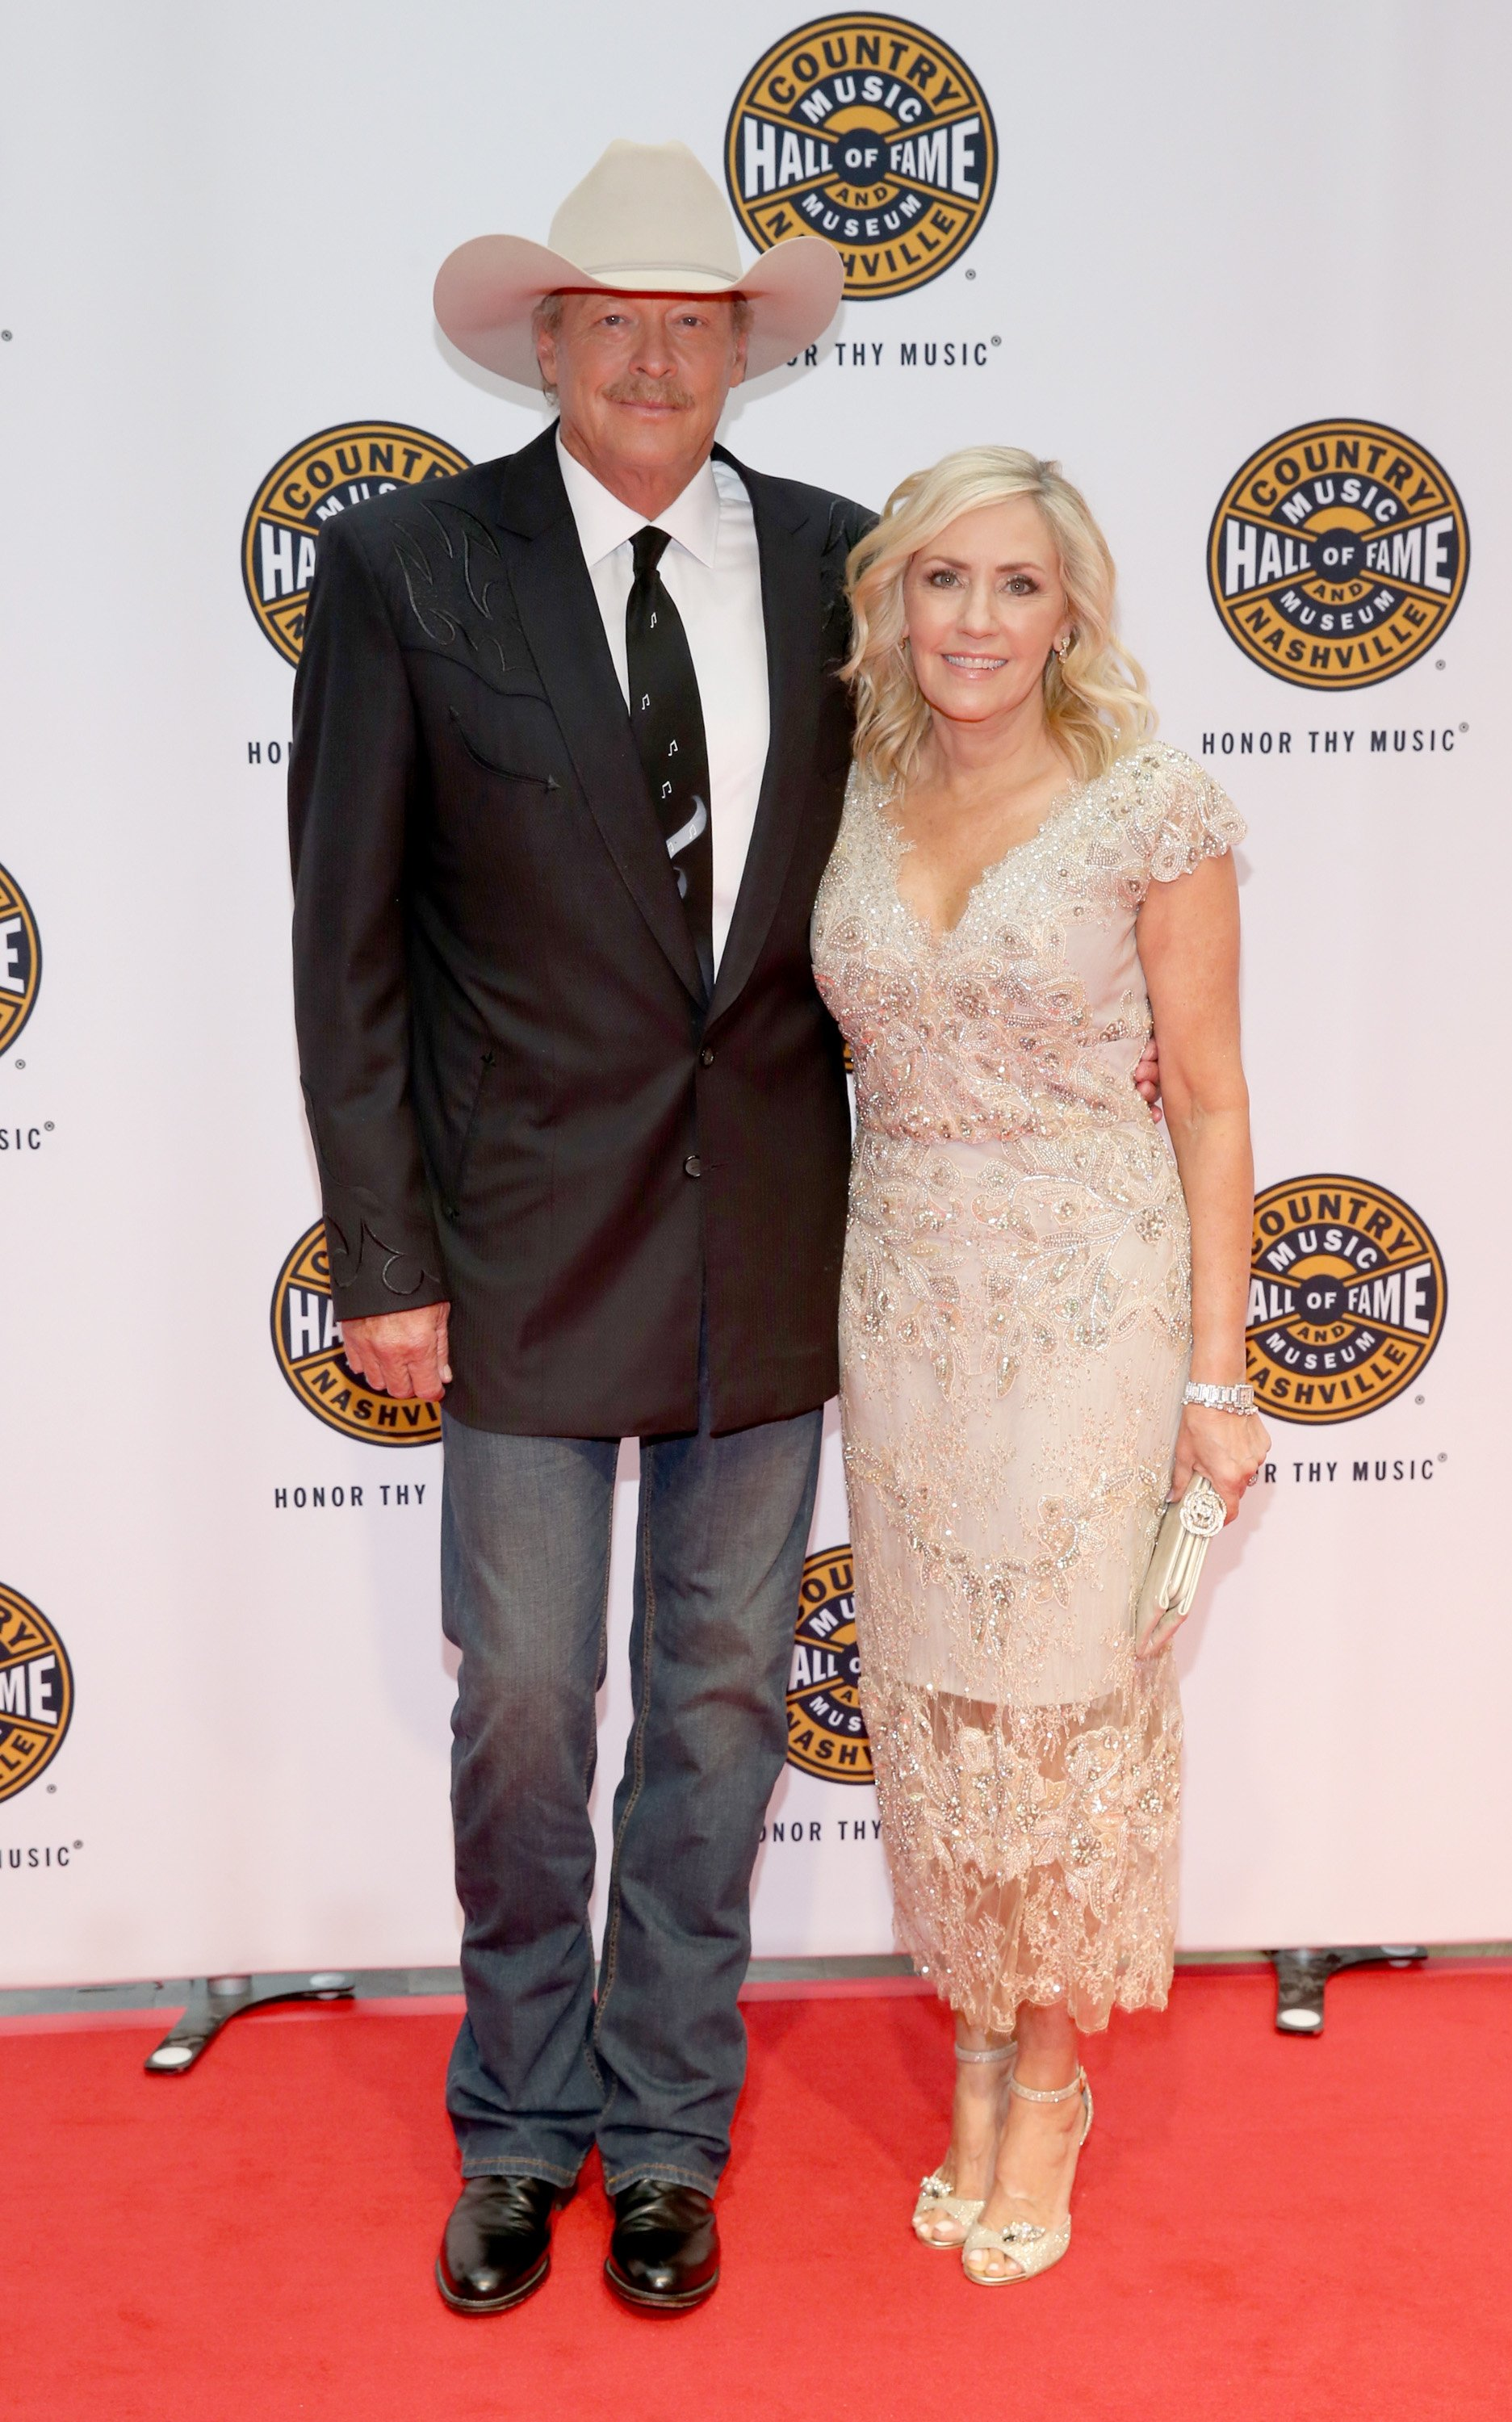 Alan Jackson and Denise Jackson attend the Country Music Hall of Fame in Nashville, Tennsee on October 22, 2017 | Photo: Getty Images